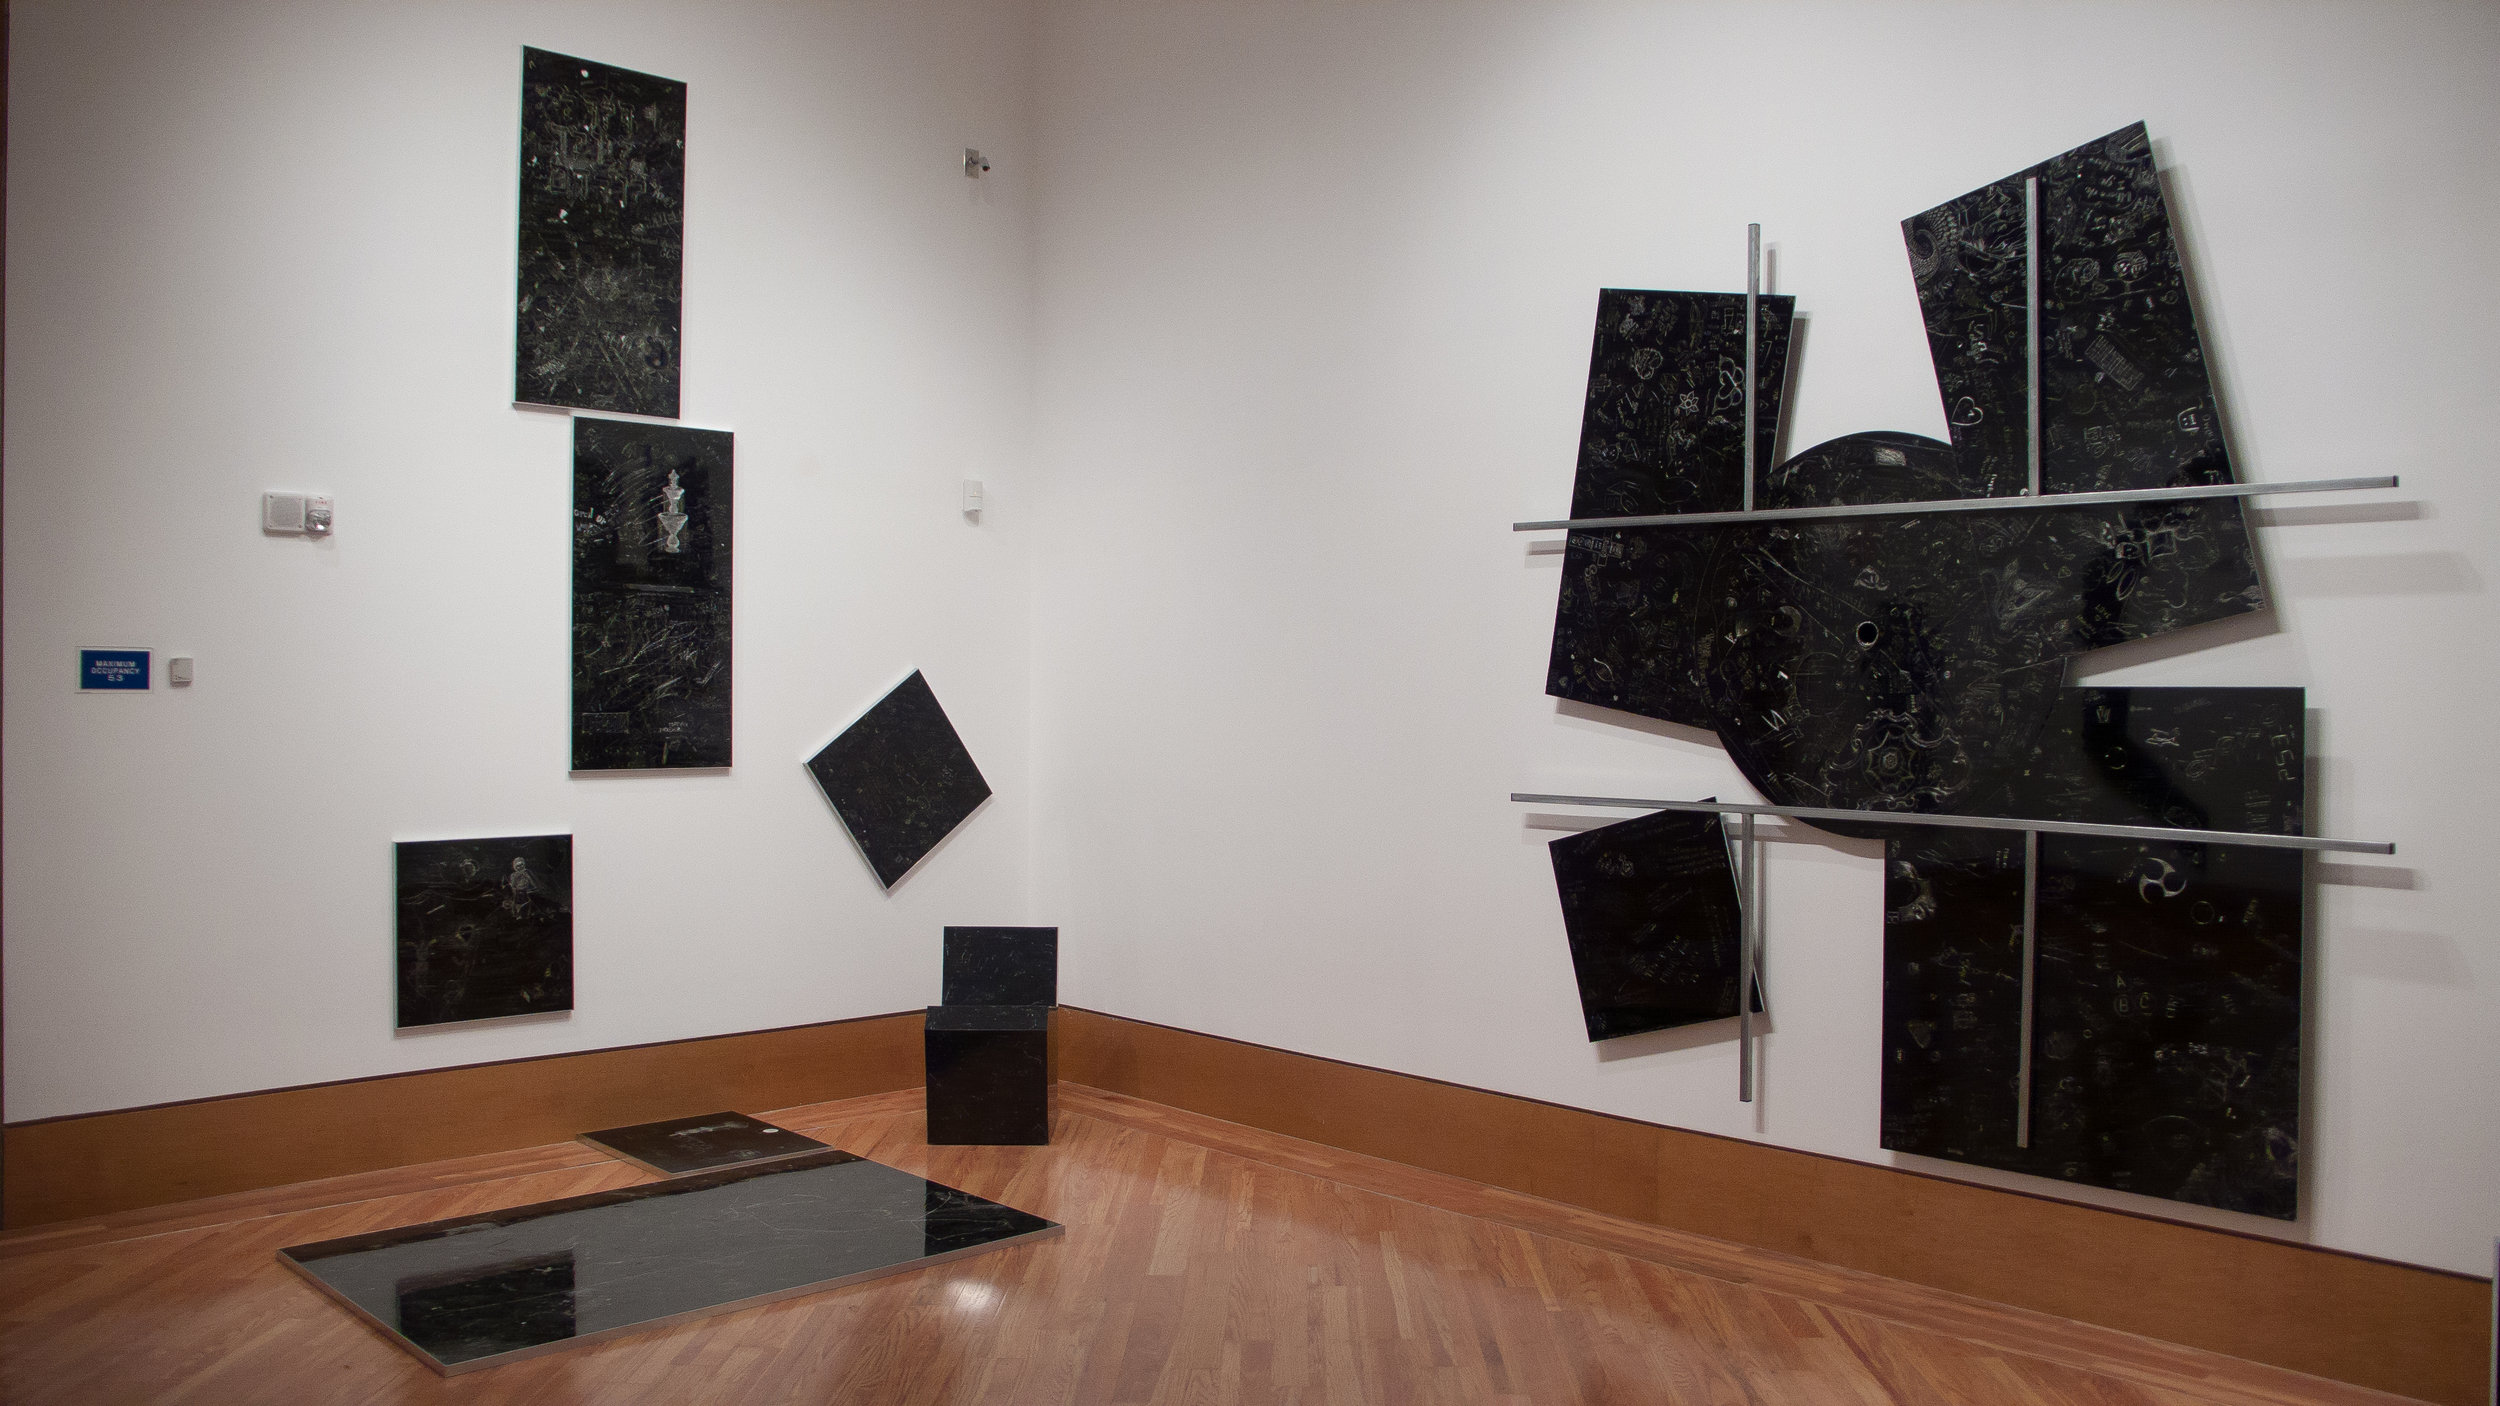 P.S., Installation view at the Frost Art Museum, Miami, FL. 2012